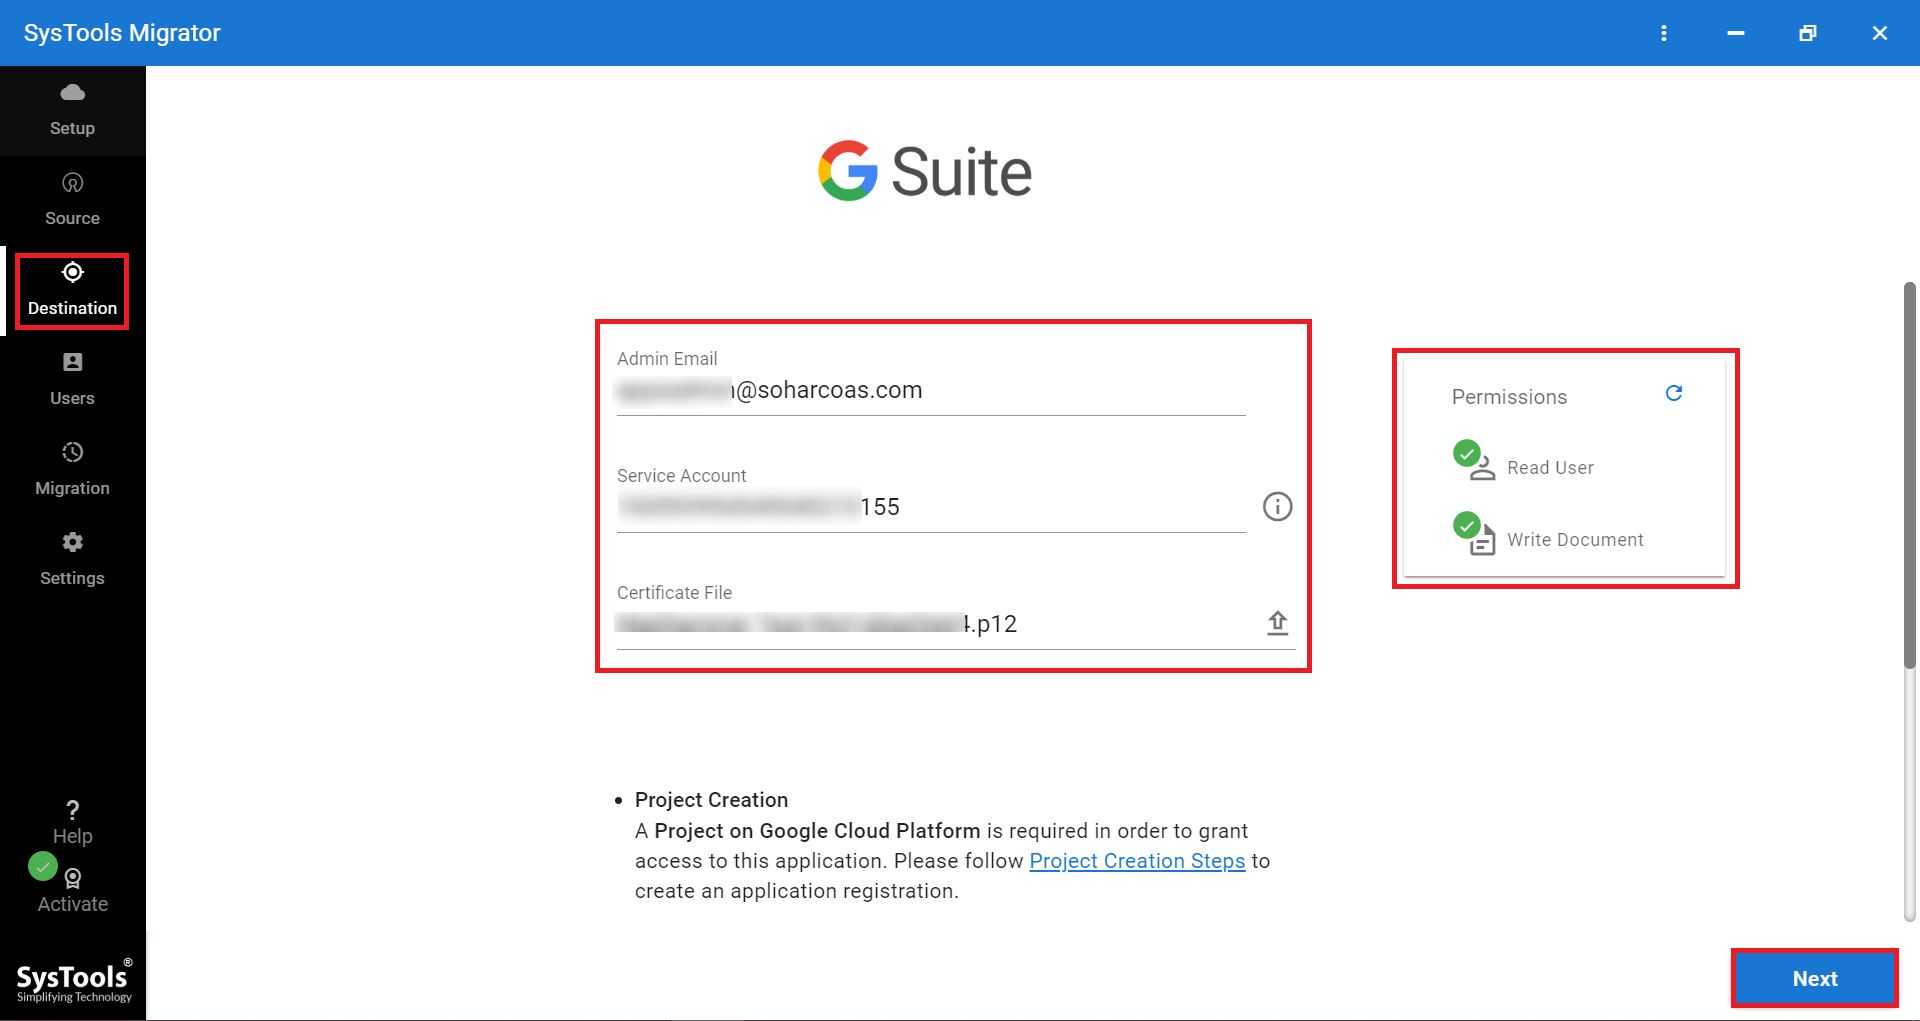 G Suite as destination